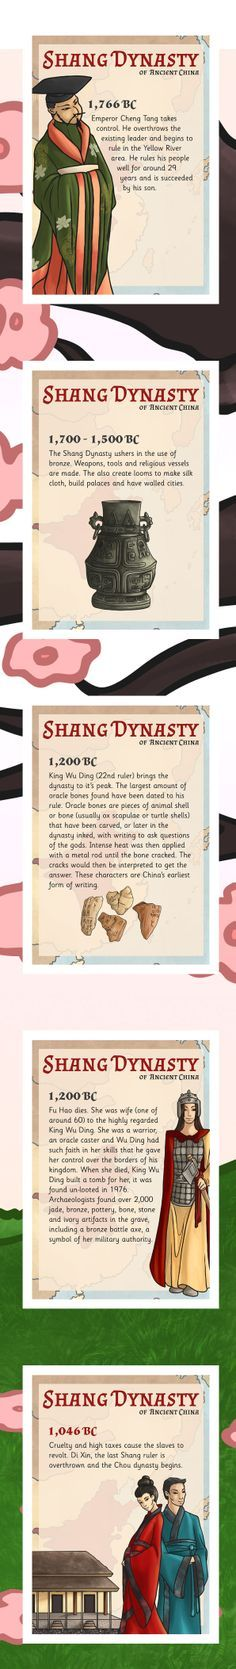 Shang Dynasty. Mystery of History Volume 1, Lesson 18 #MOHI18